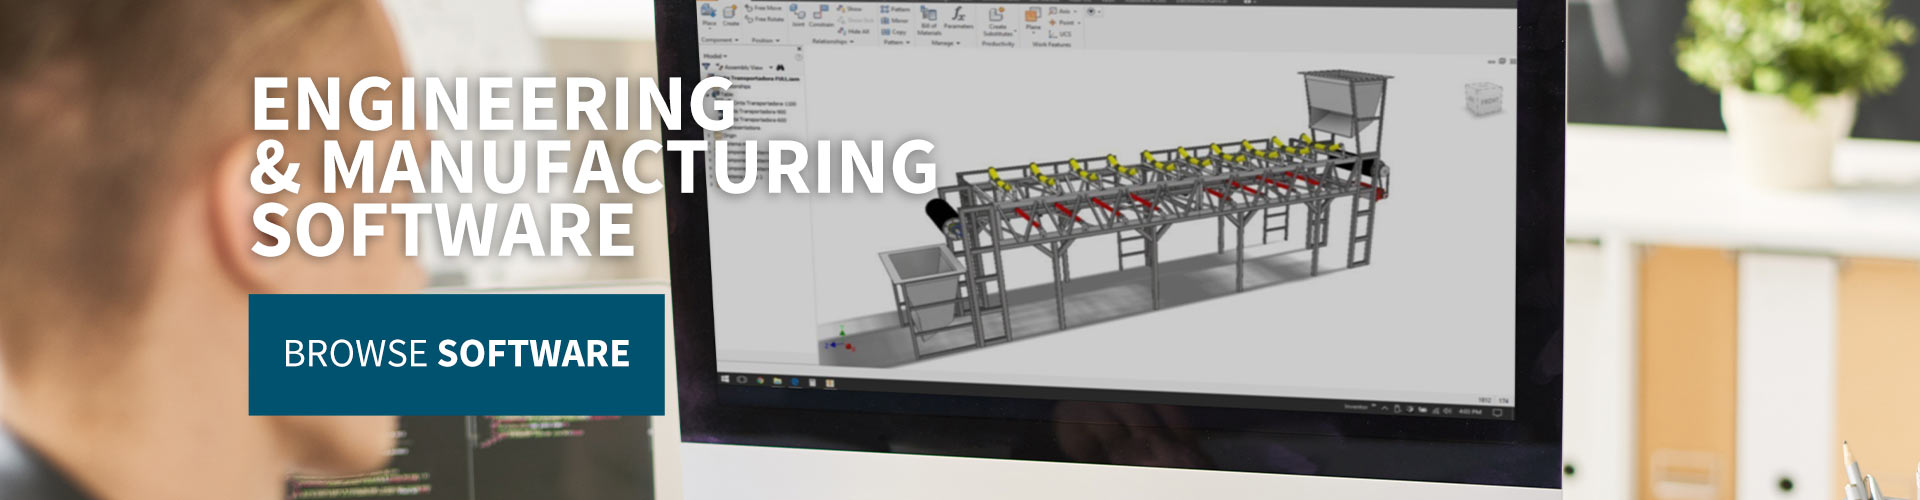 Engineering & Manufacturing Software